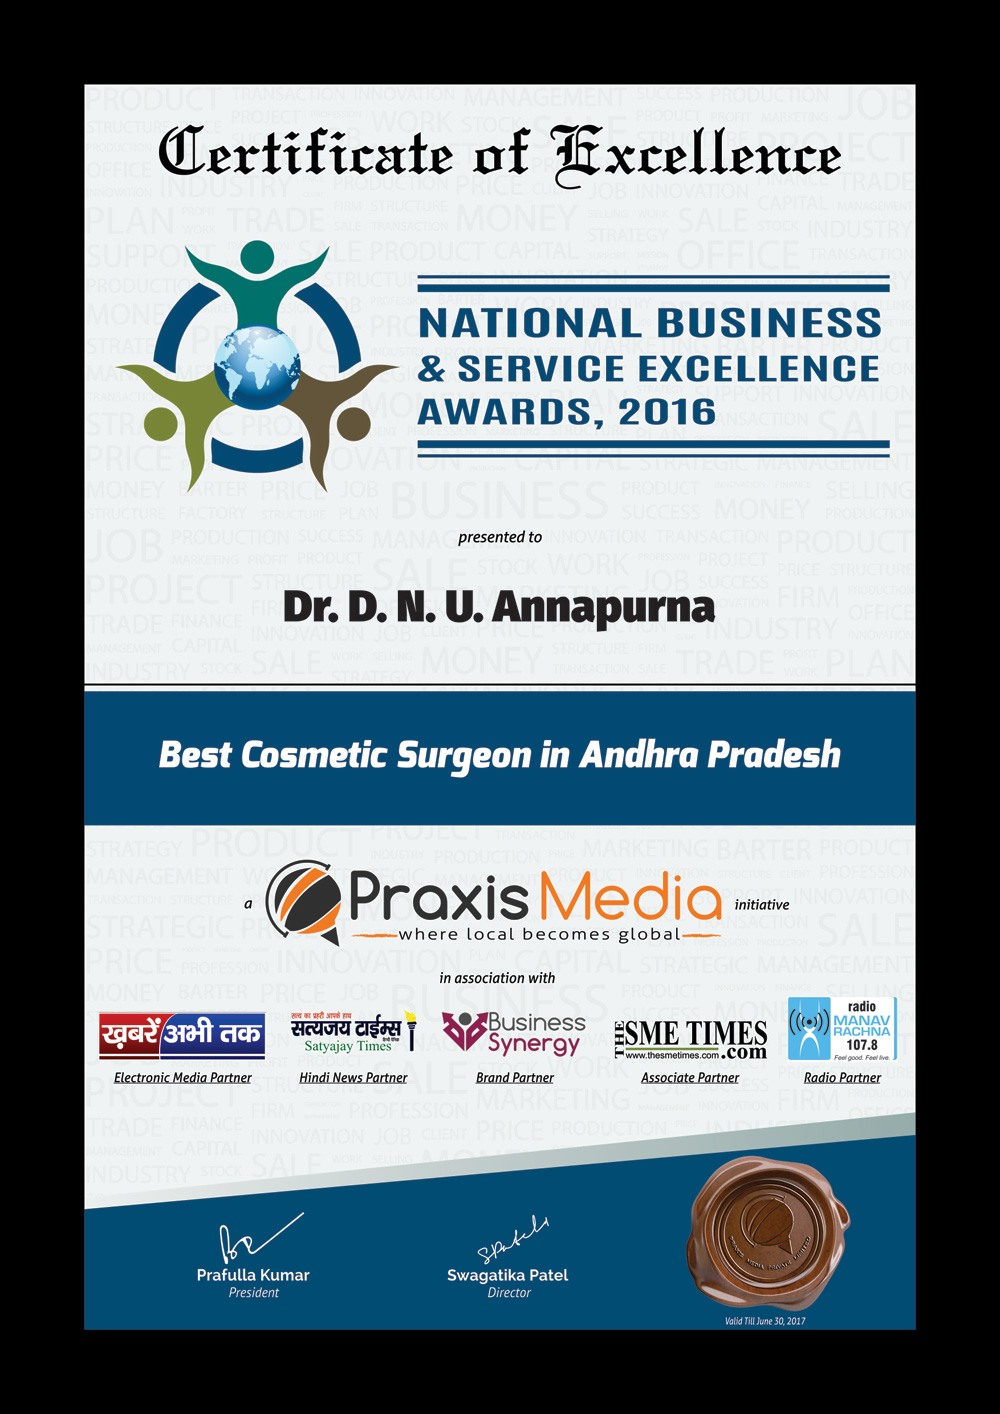 National Business & Service Excellence Awards 2016